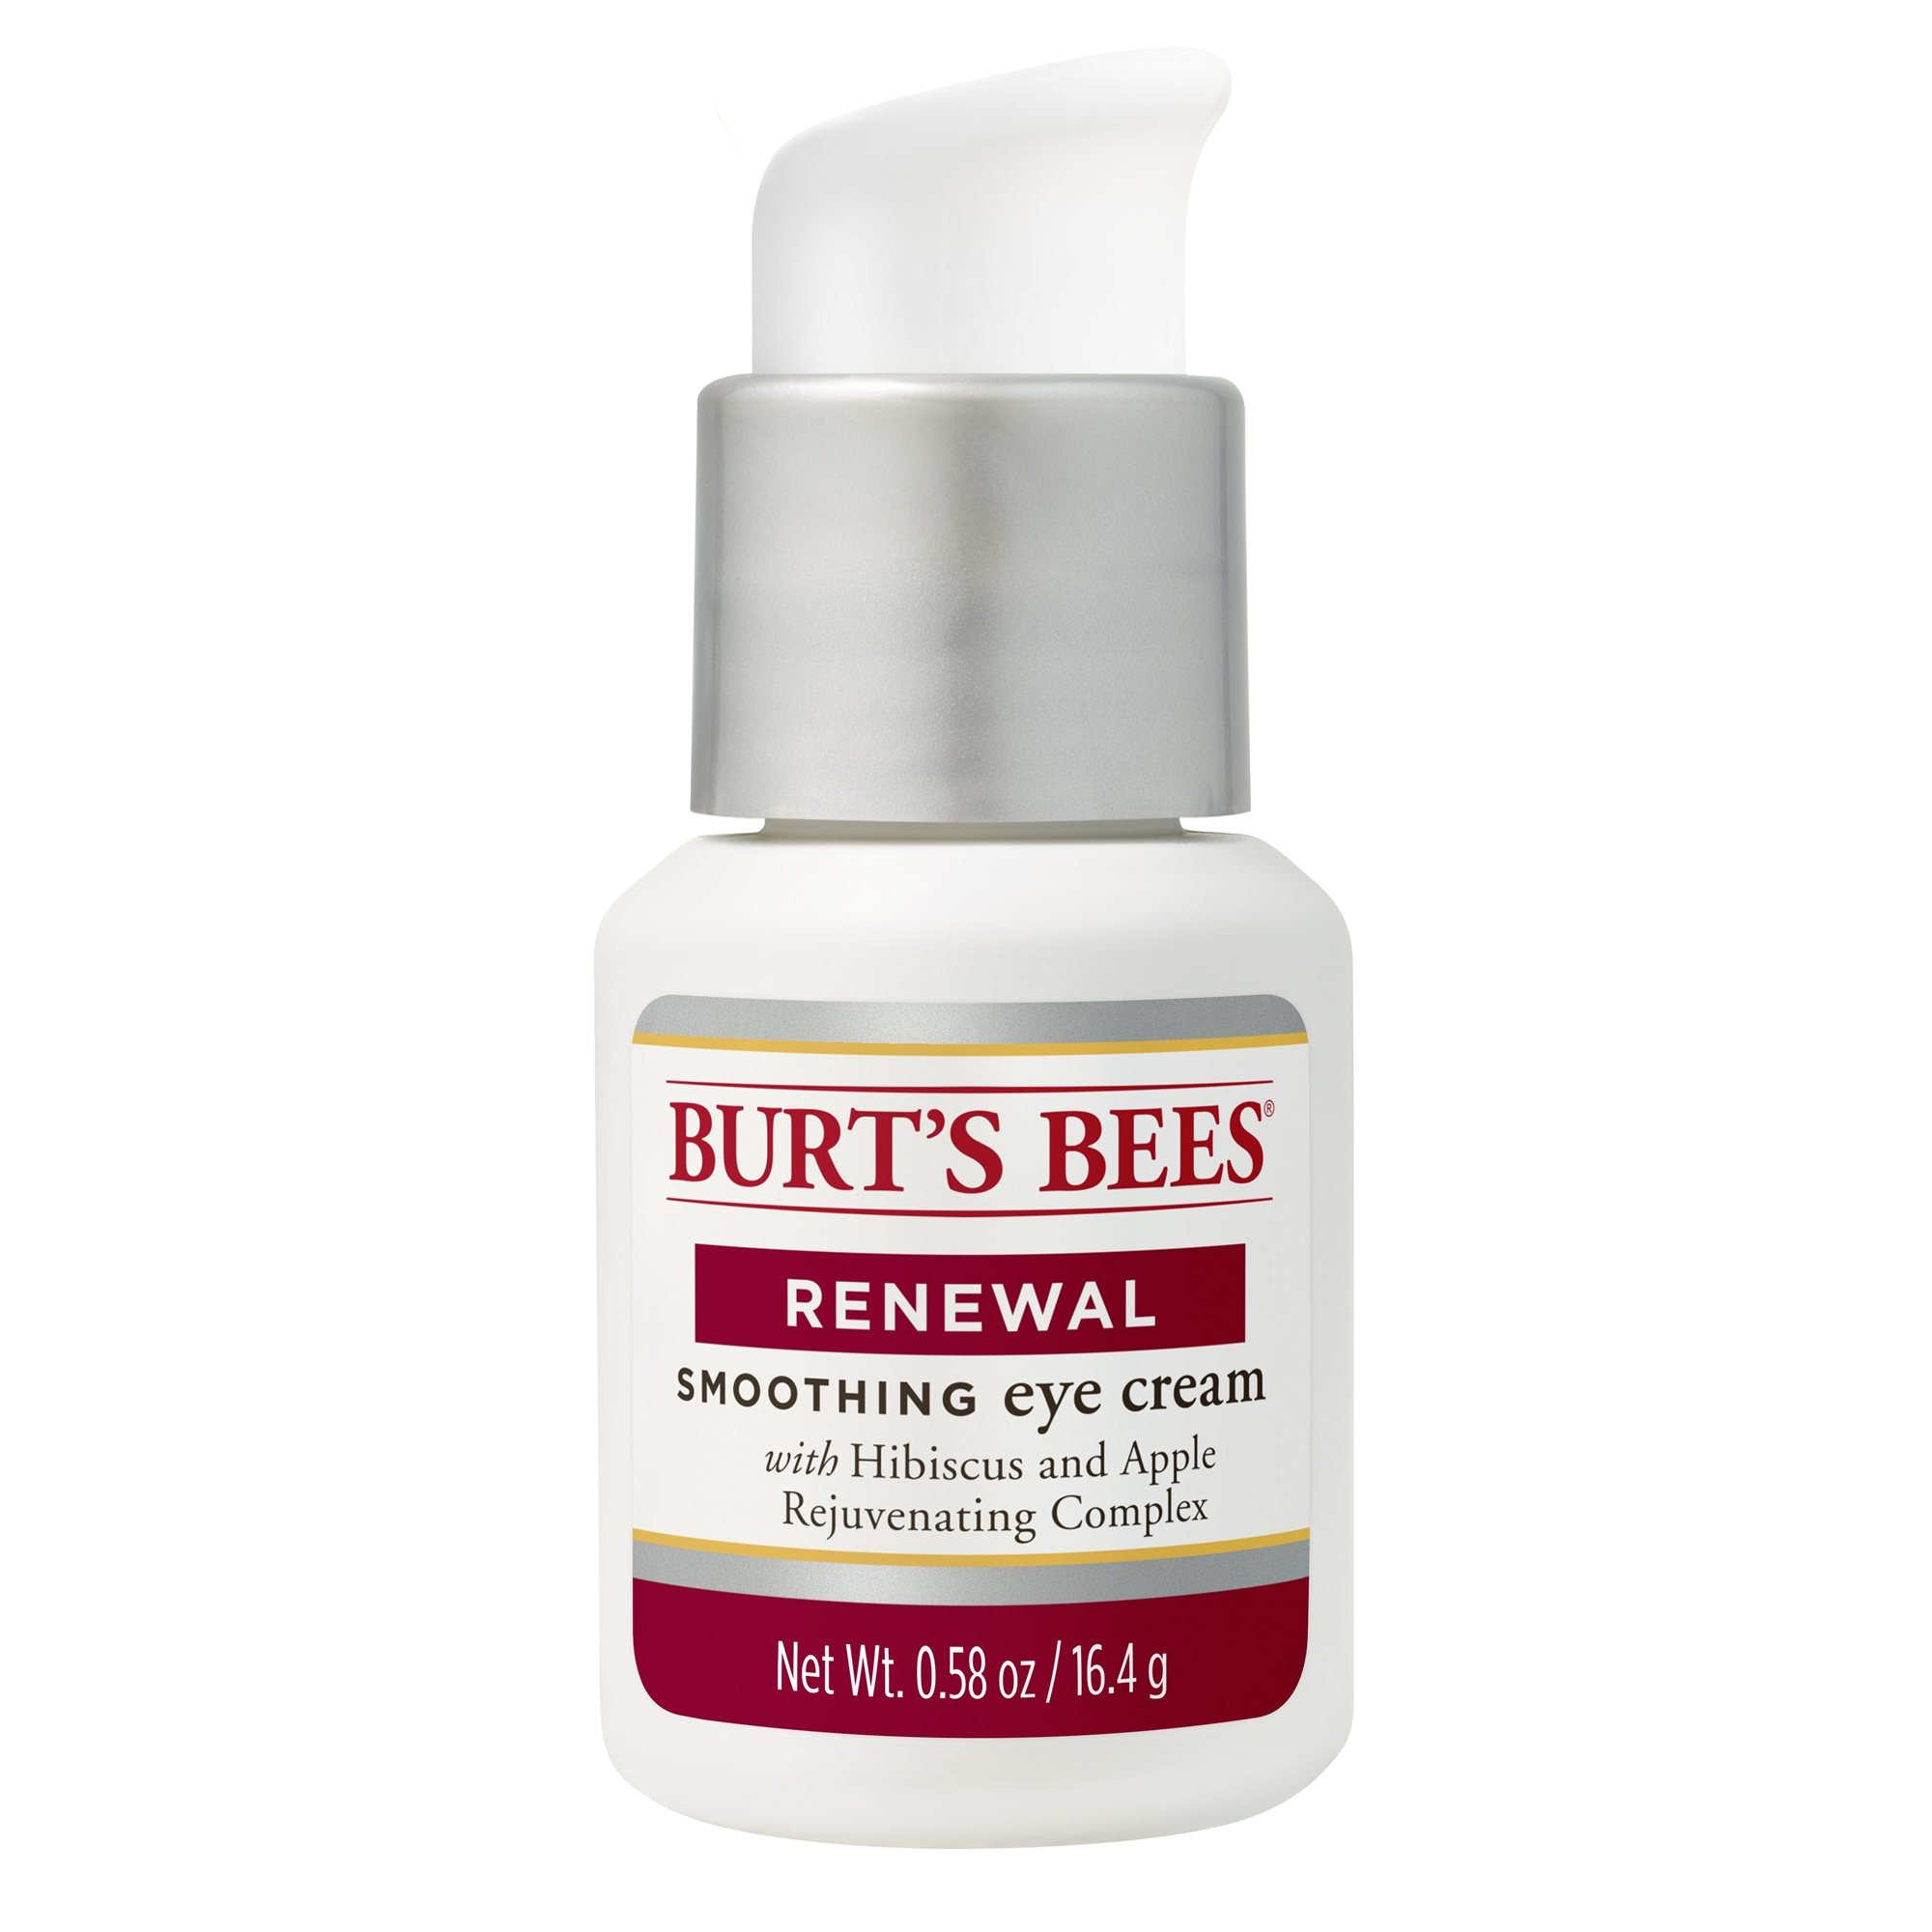 Burt's Bees Renewal Smoothing Eye Cream, Firming Eye Cream, 0.58 oz